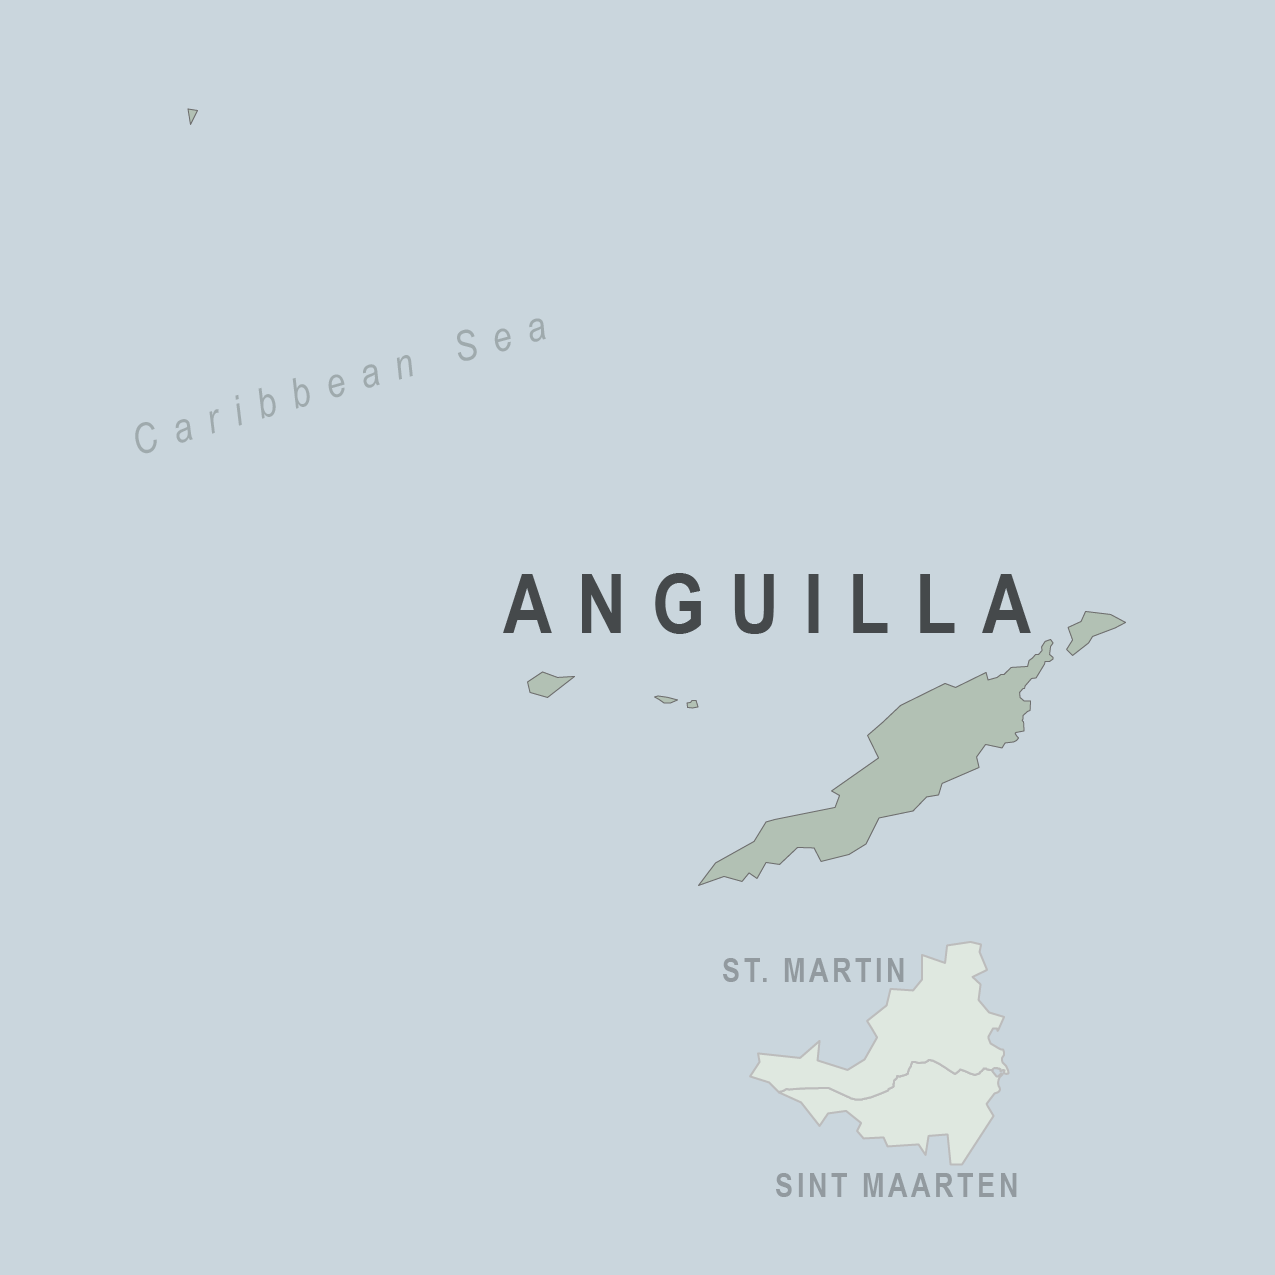 Map - Anguilla